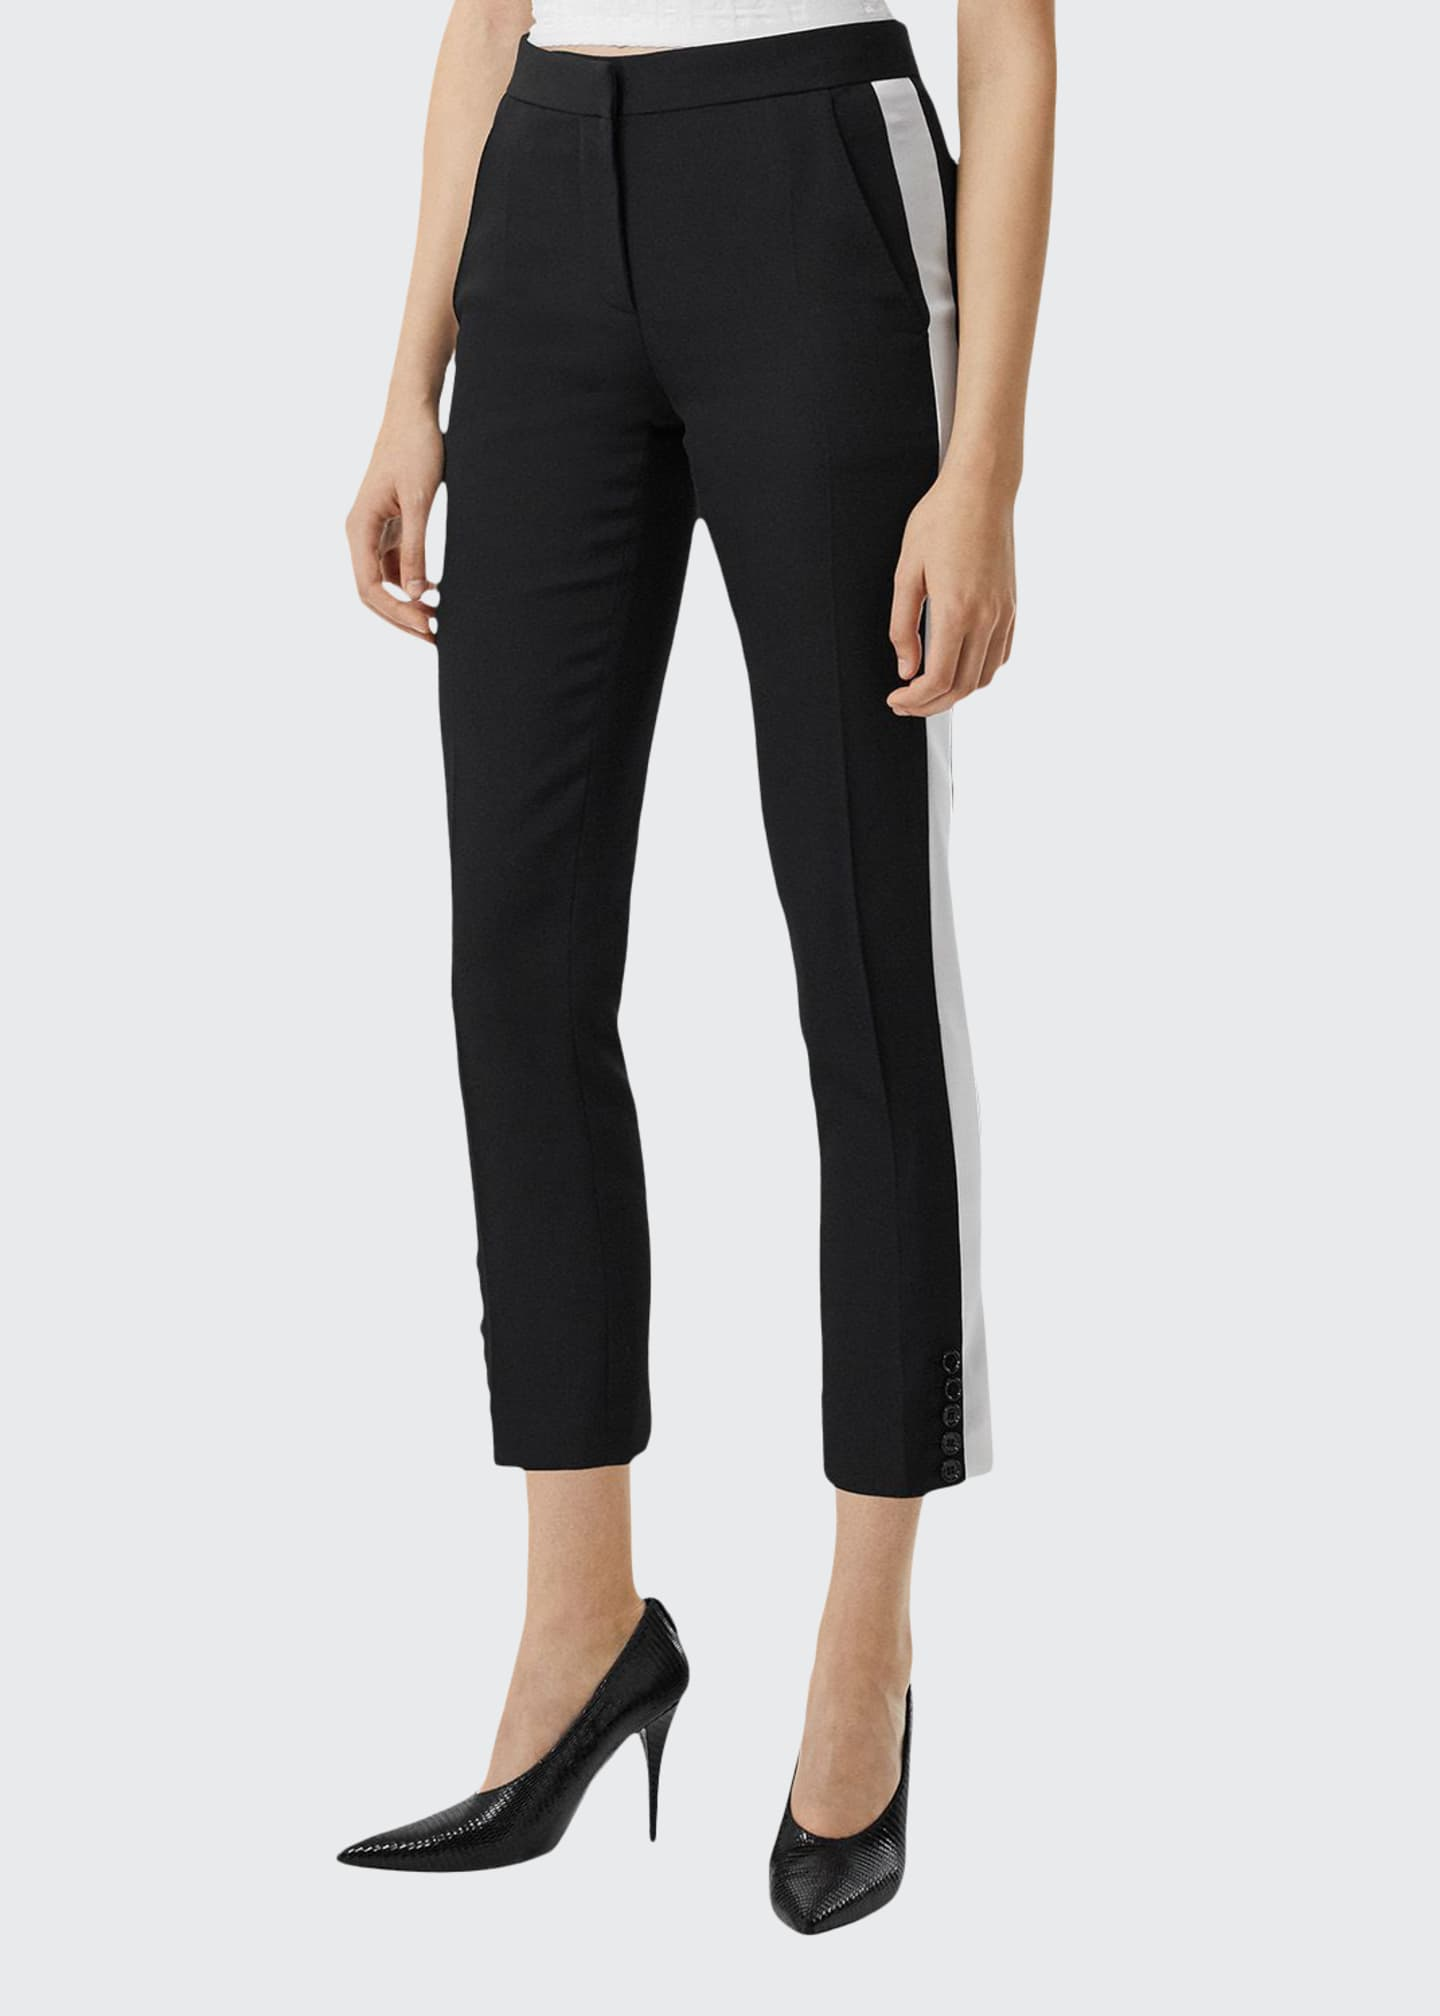 Burberry Hanover Wool Cigarette Trousers